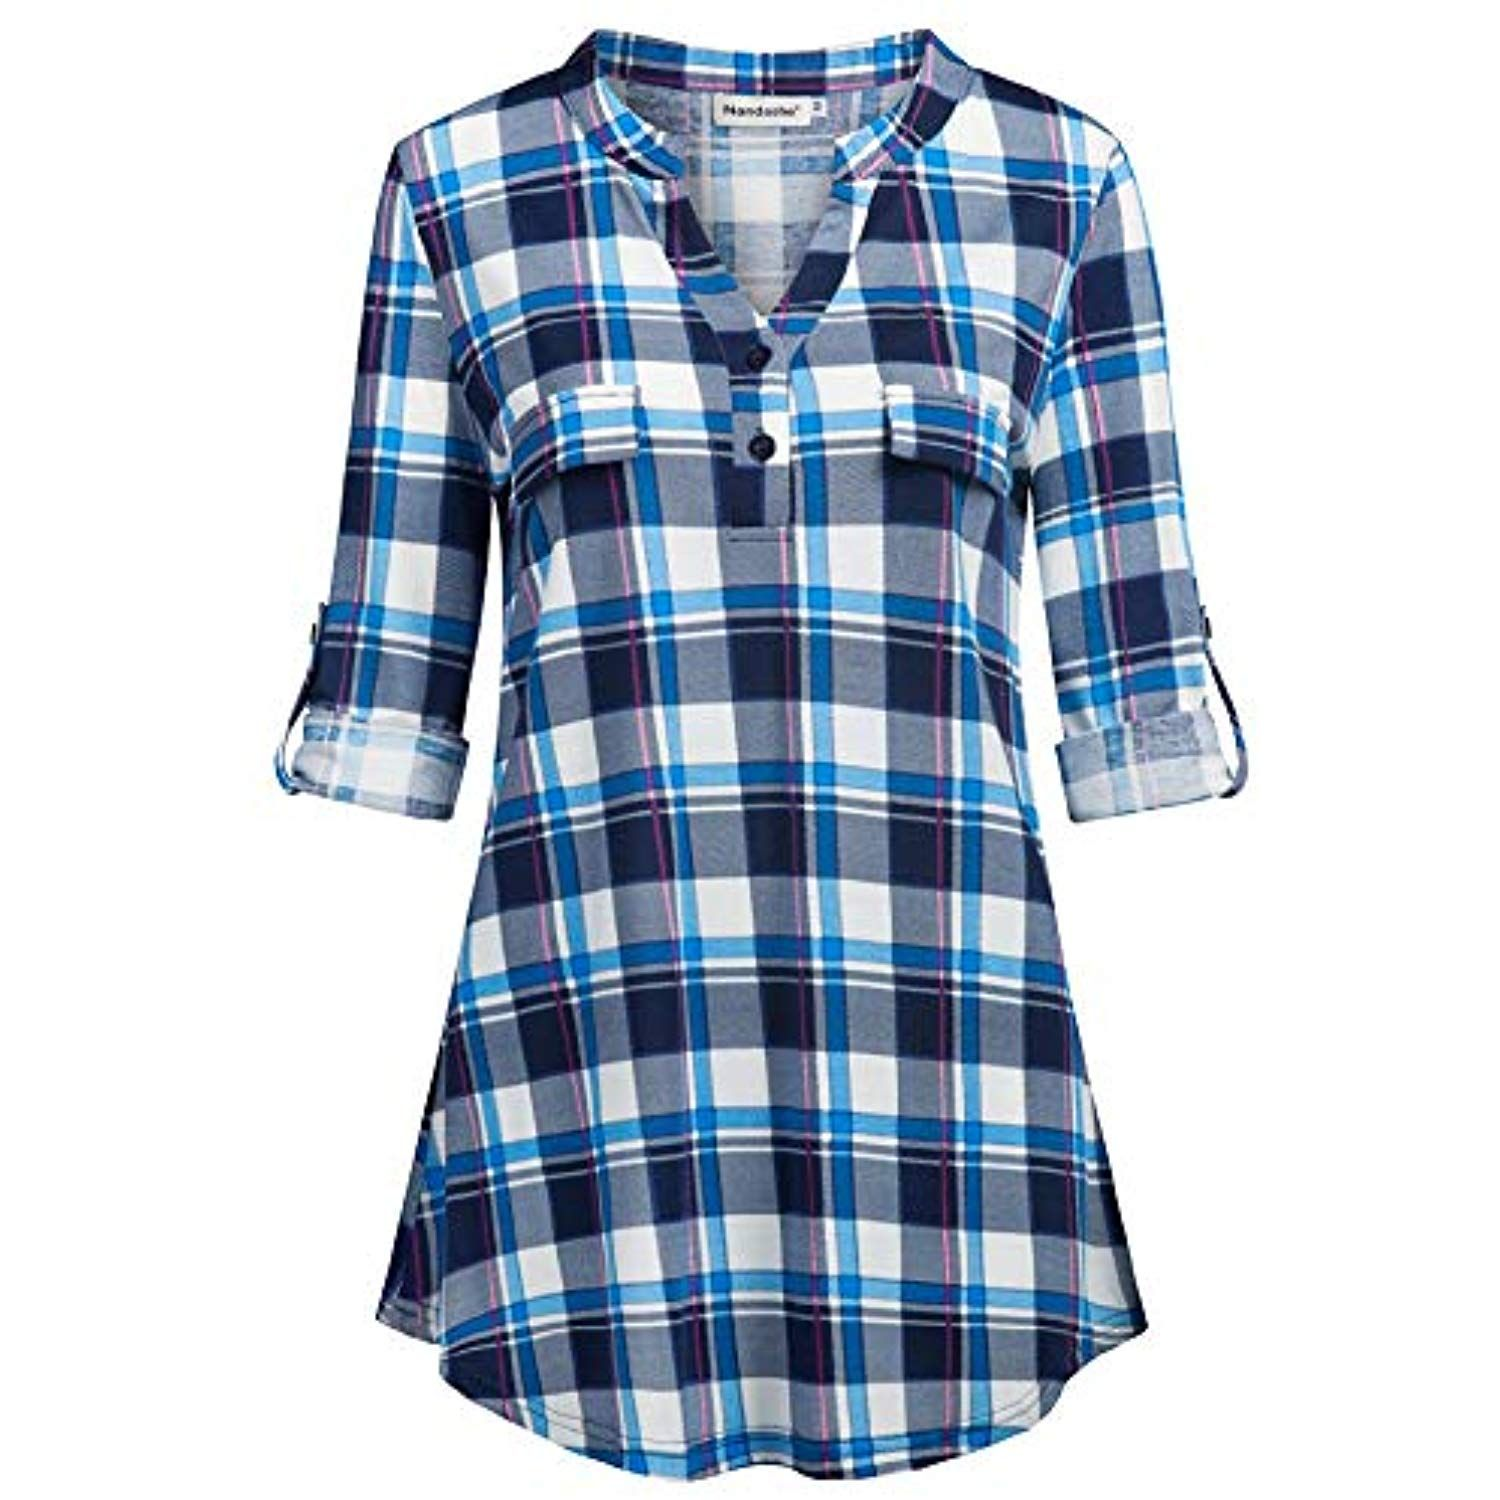 4033f76dac3c7 Womens 3 4 Roll Sleeve Shirt V Neck Button Down Blouse Loose Tunic Tops      Details can be found by clicking on the image. (This is an affiliate link)    ...